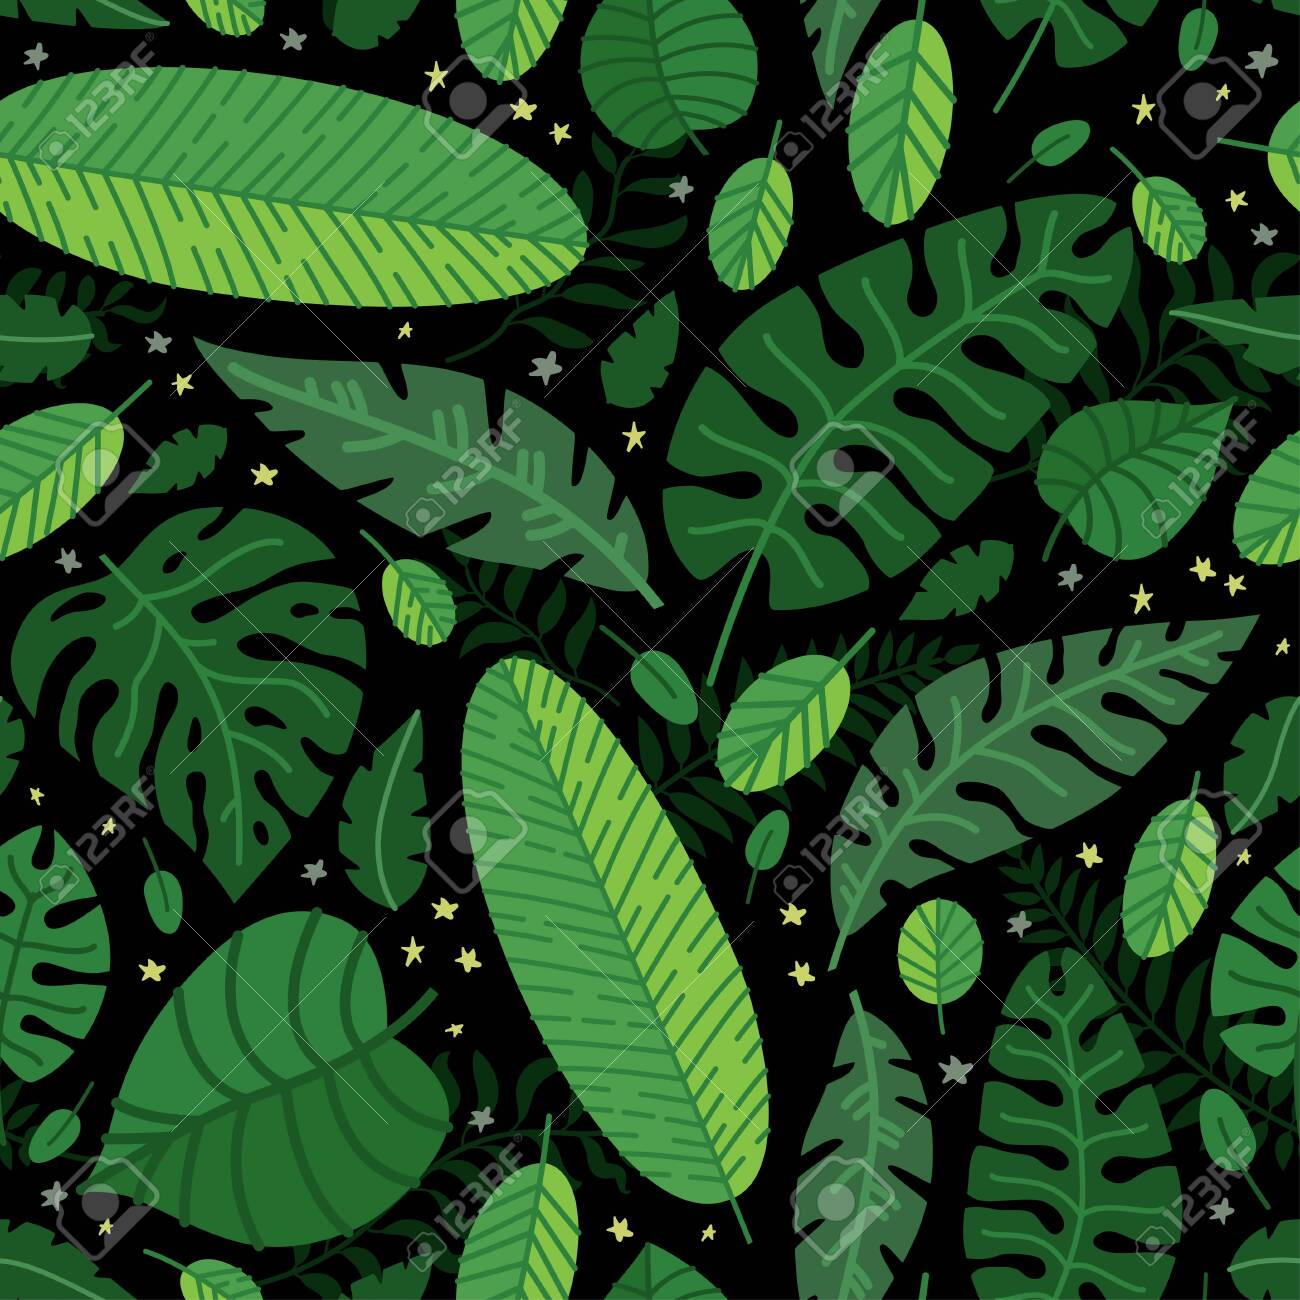 Tropical Leaves Vector Pattern Summer Equatorial Rainforest Royalty Free Cliparts Vectors And Stock Illustration Image 124097168 Freepik free vectors, photos and psd freepik online editor edit your freepik templates slidesgo free templates for presentations stories free editable illustrations. tropical leaves vector pattern summer equatorial rainforest